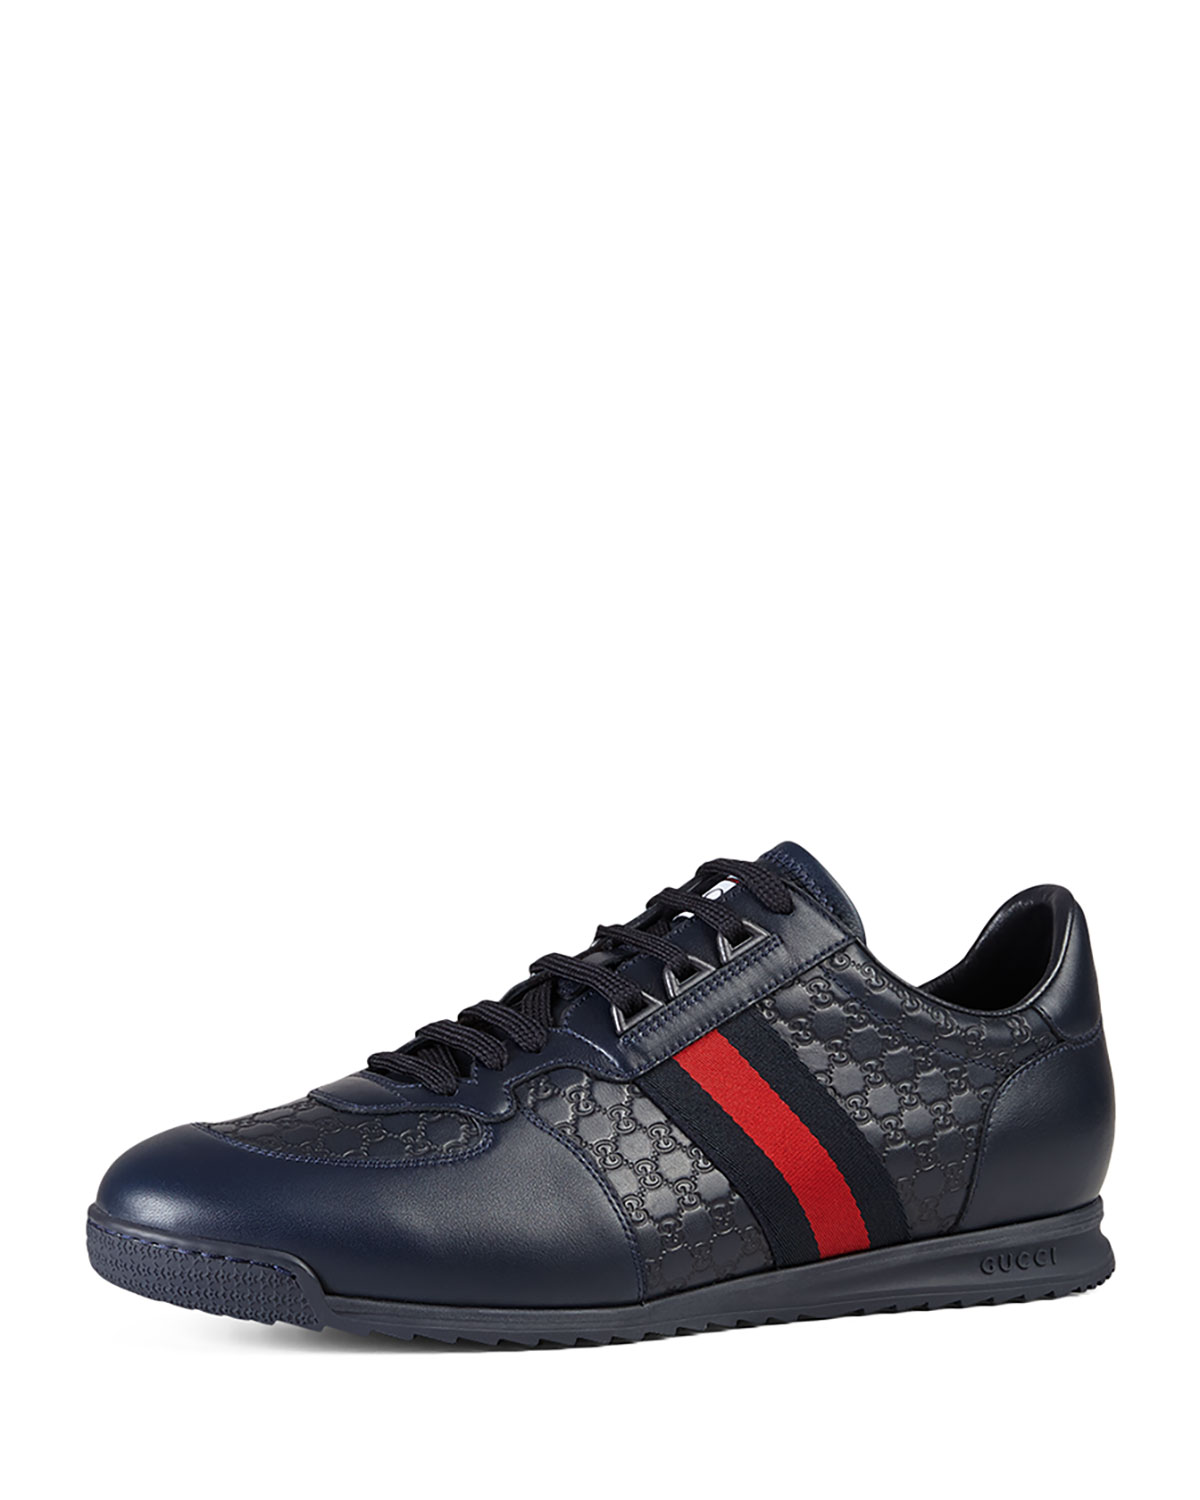 c4d95ab0a62 Gucci Men s SL73 Lace-Up Sneakers